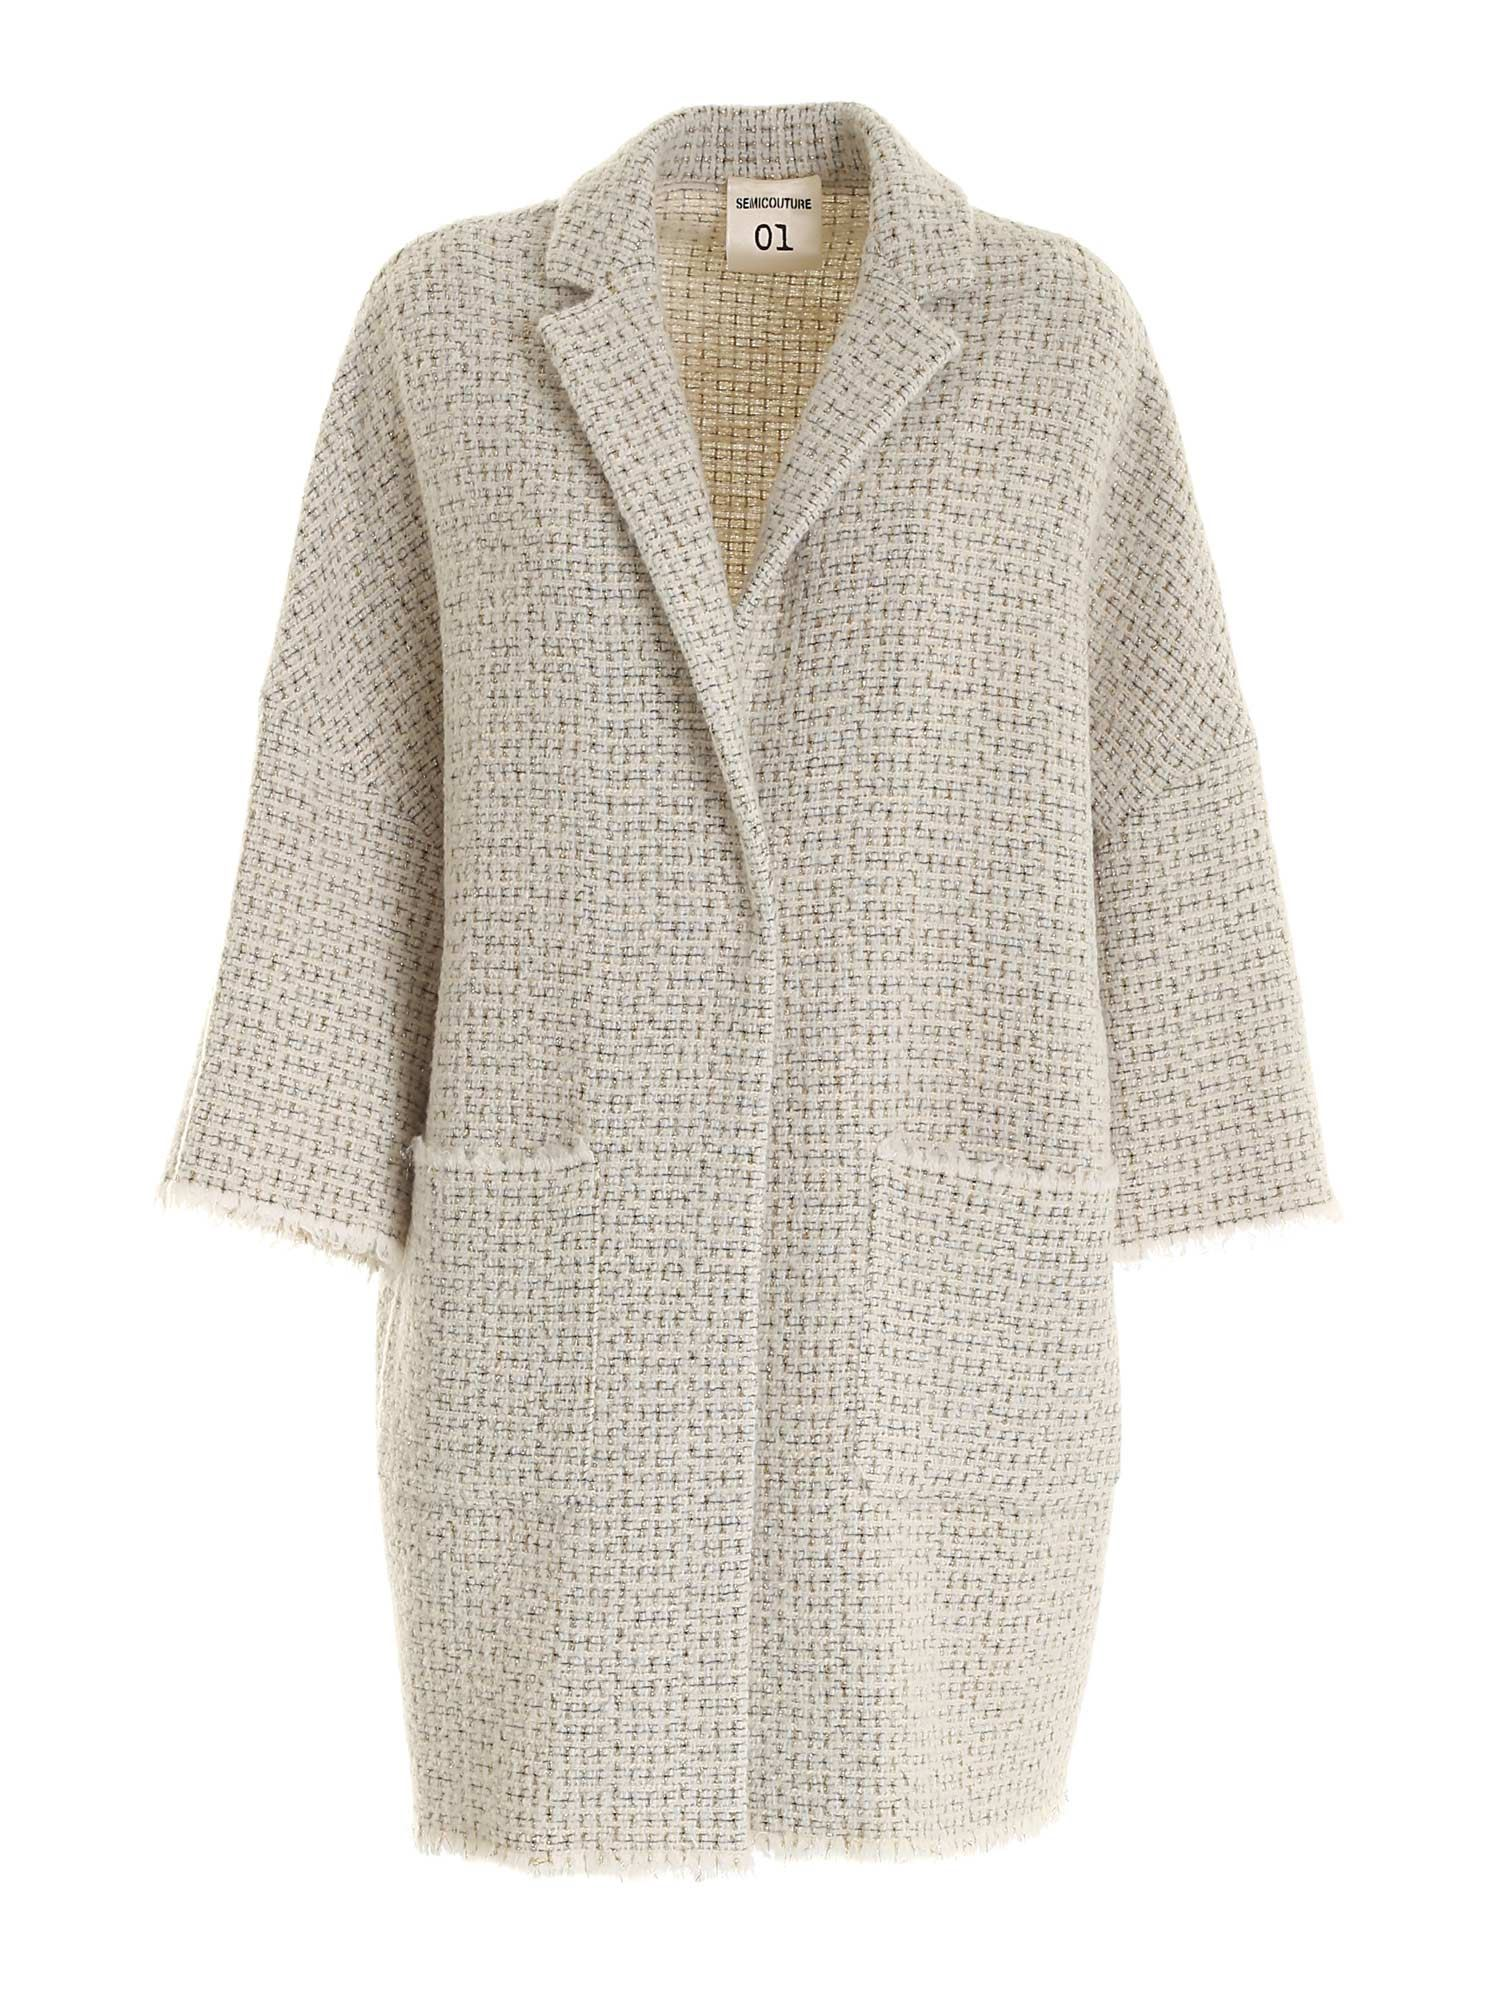 Semicouture FRINGED EDGES COAT IN WHITE